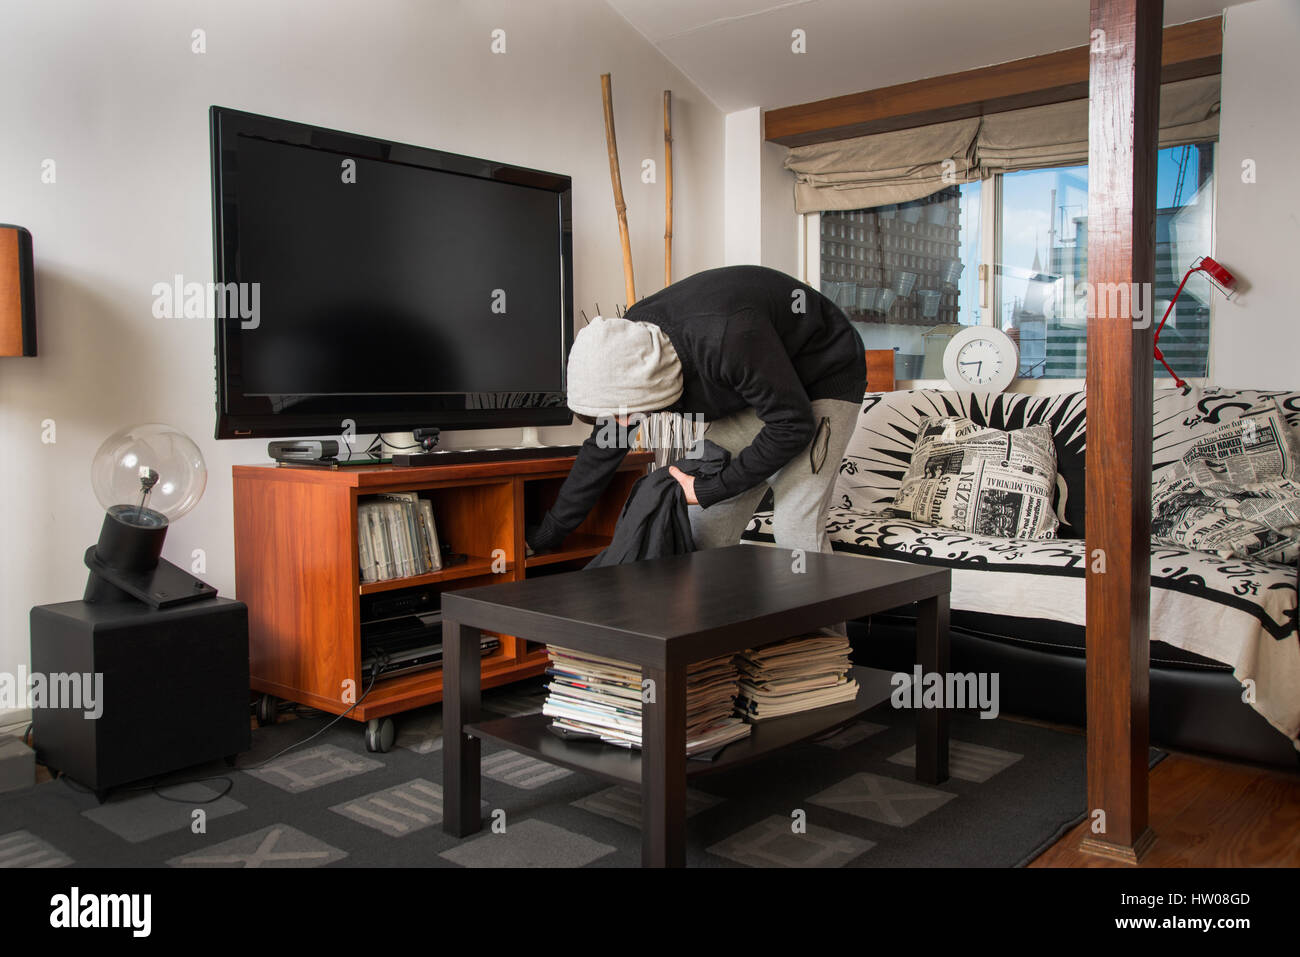 Stock Photo Burglar Robbing A House Burglar Stealing Stuff In A Living Room